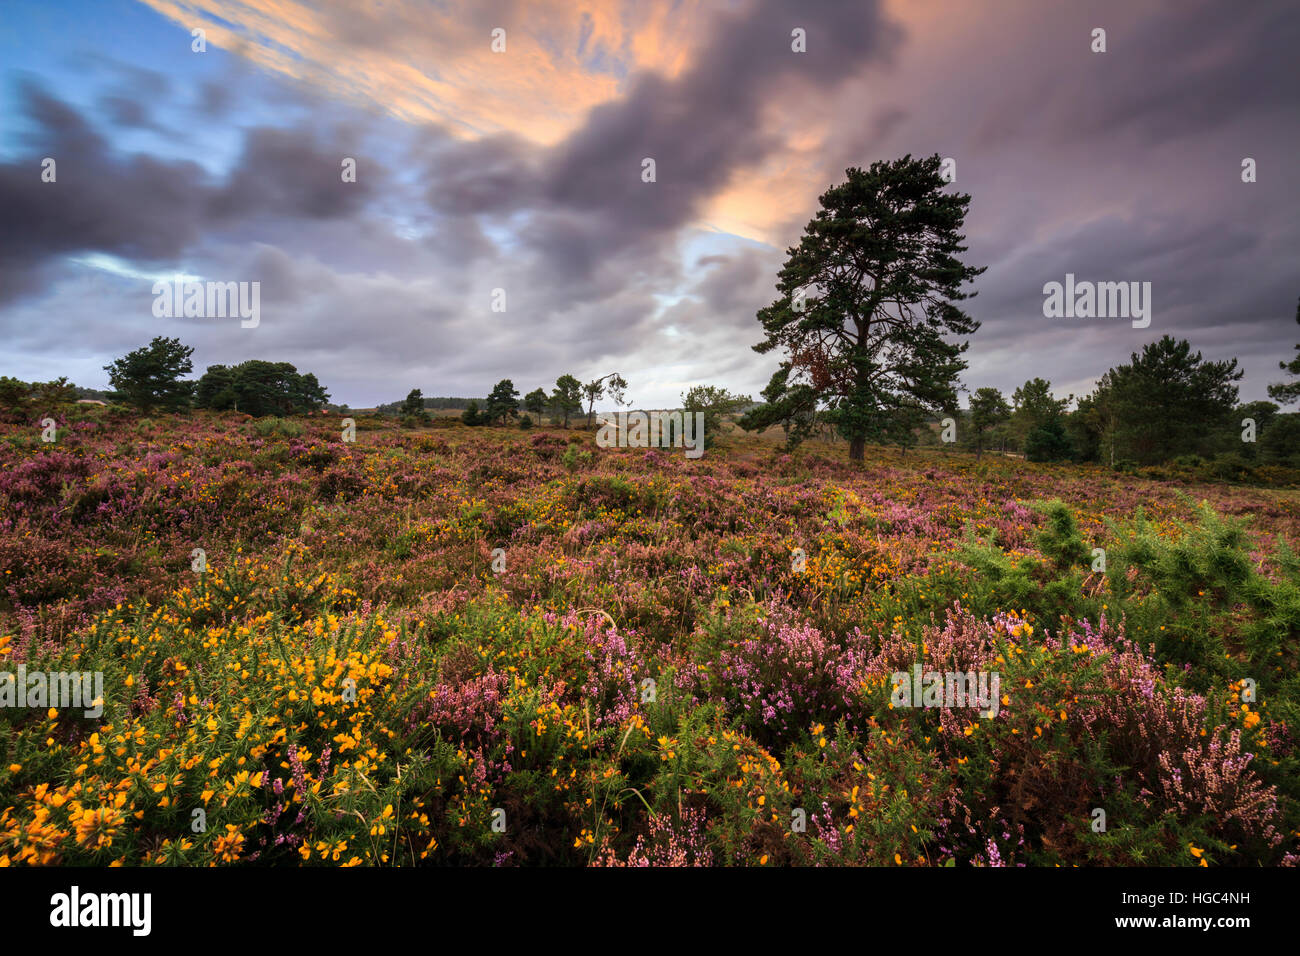 A tree captured at sunset on Woodbury Common Near Exmouth in South East Devon. - Stock Image